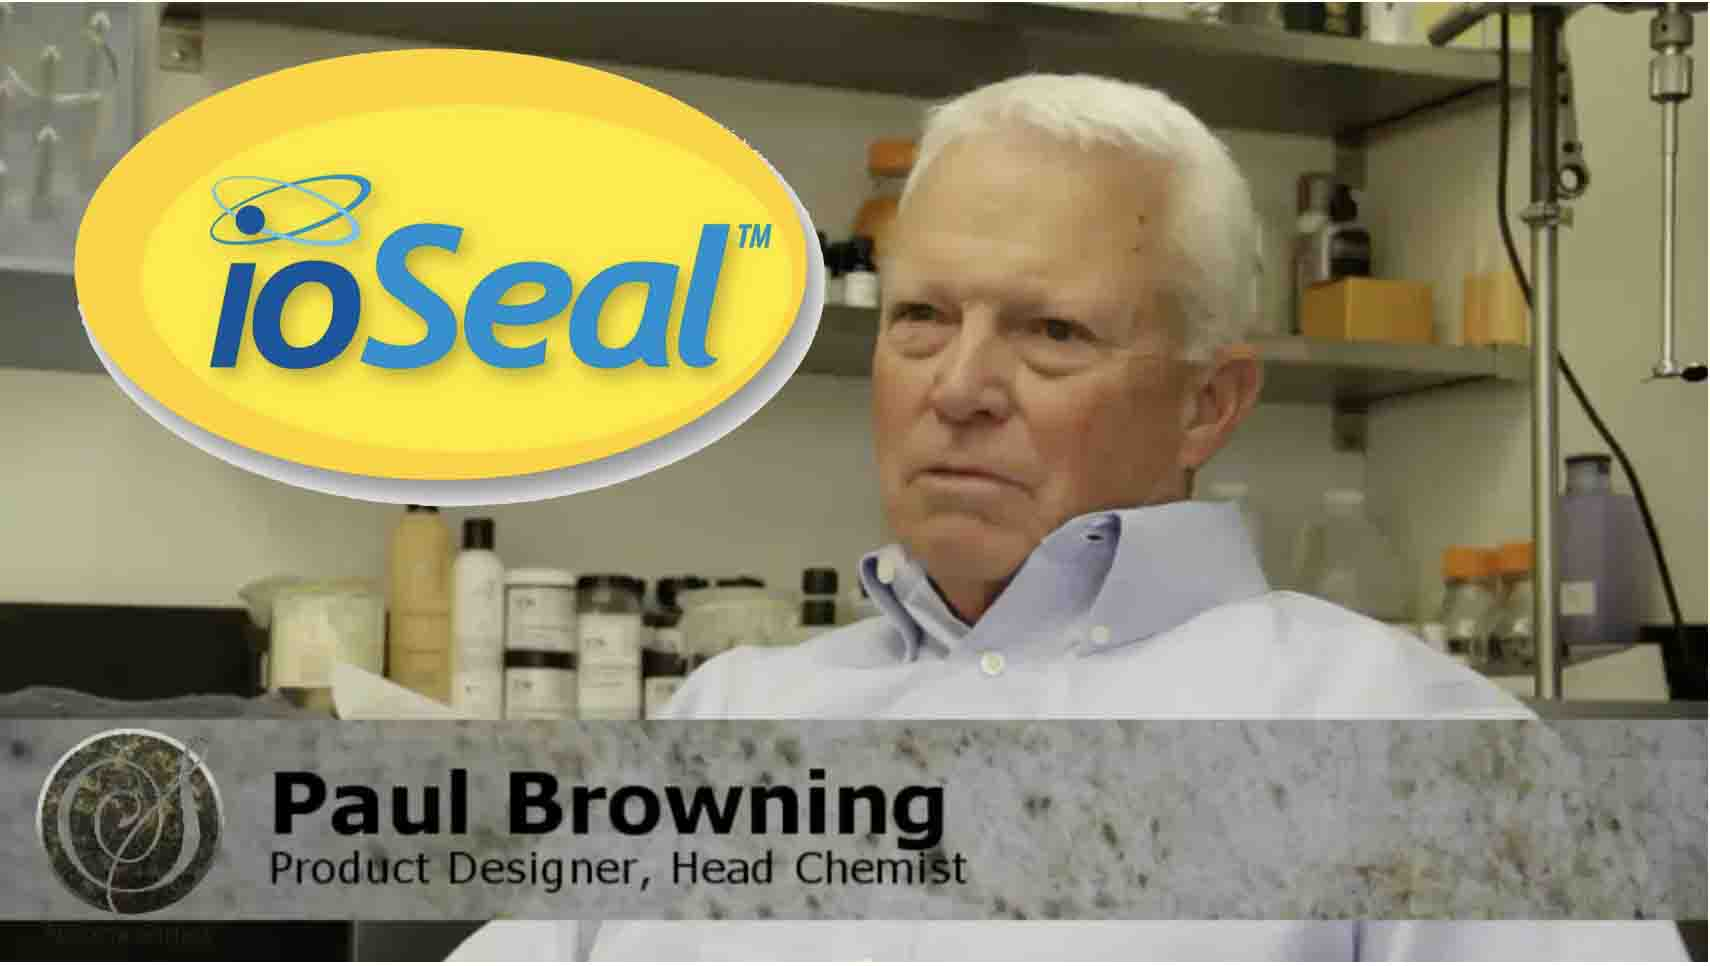 Pictured is Head Chemist and Product Designer of ioSeal.